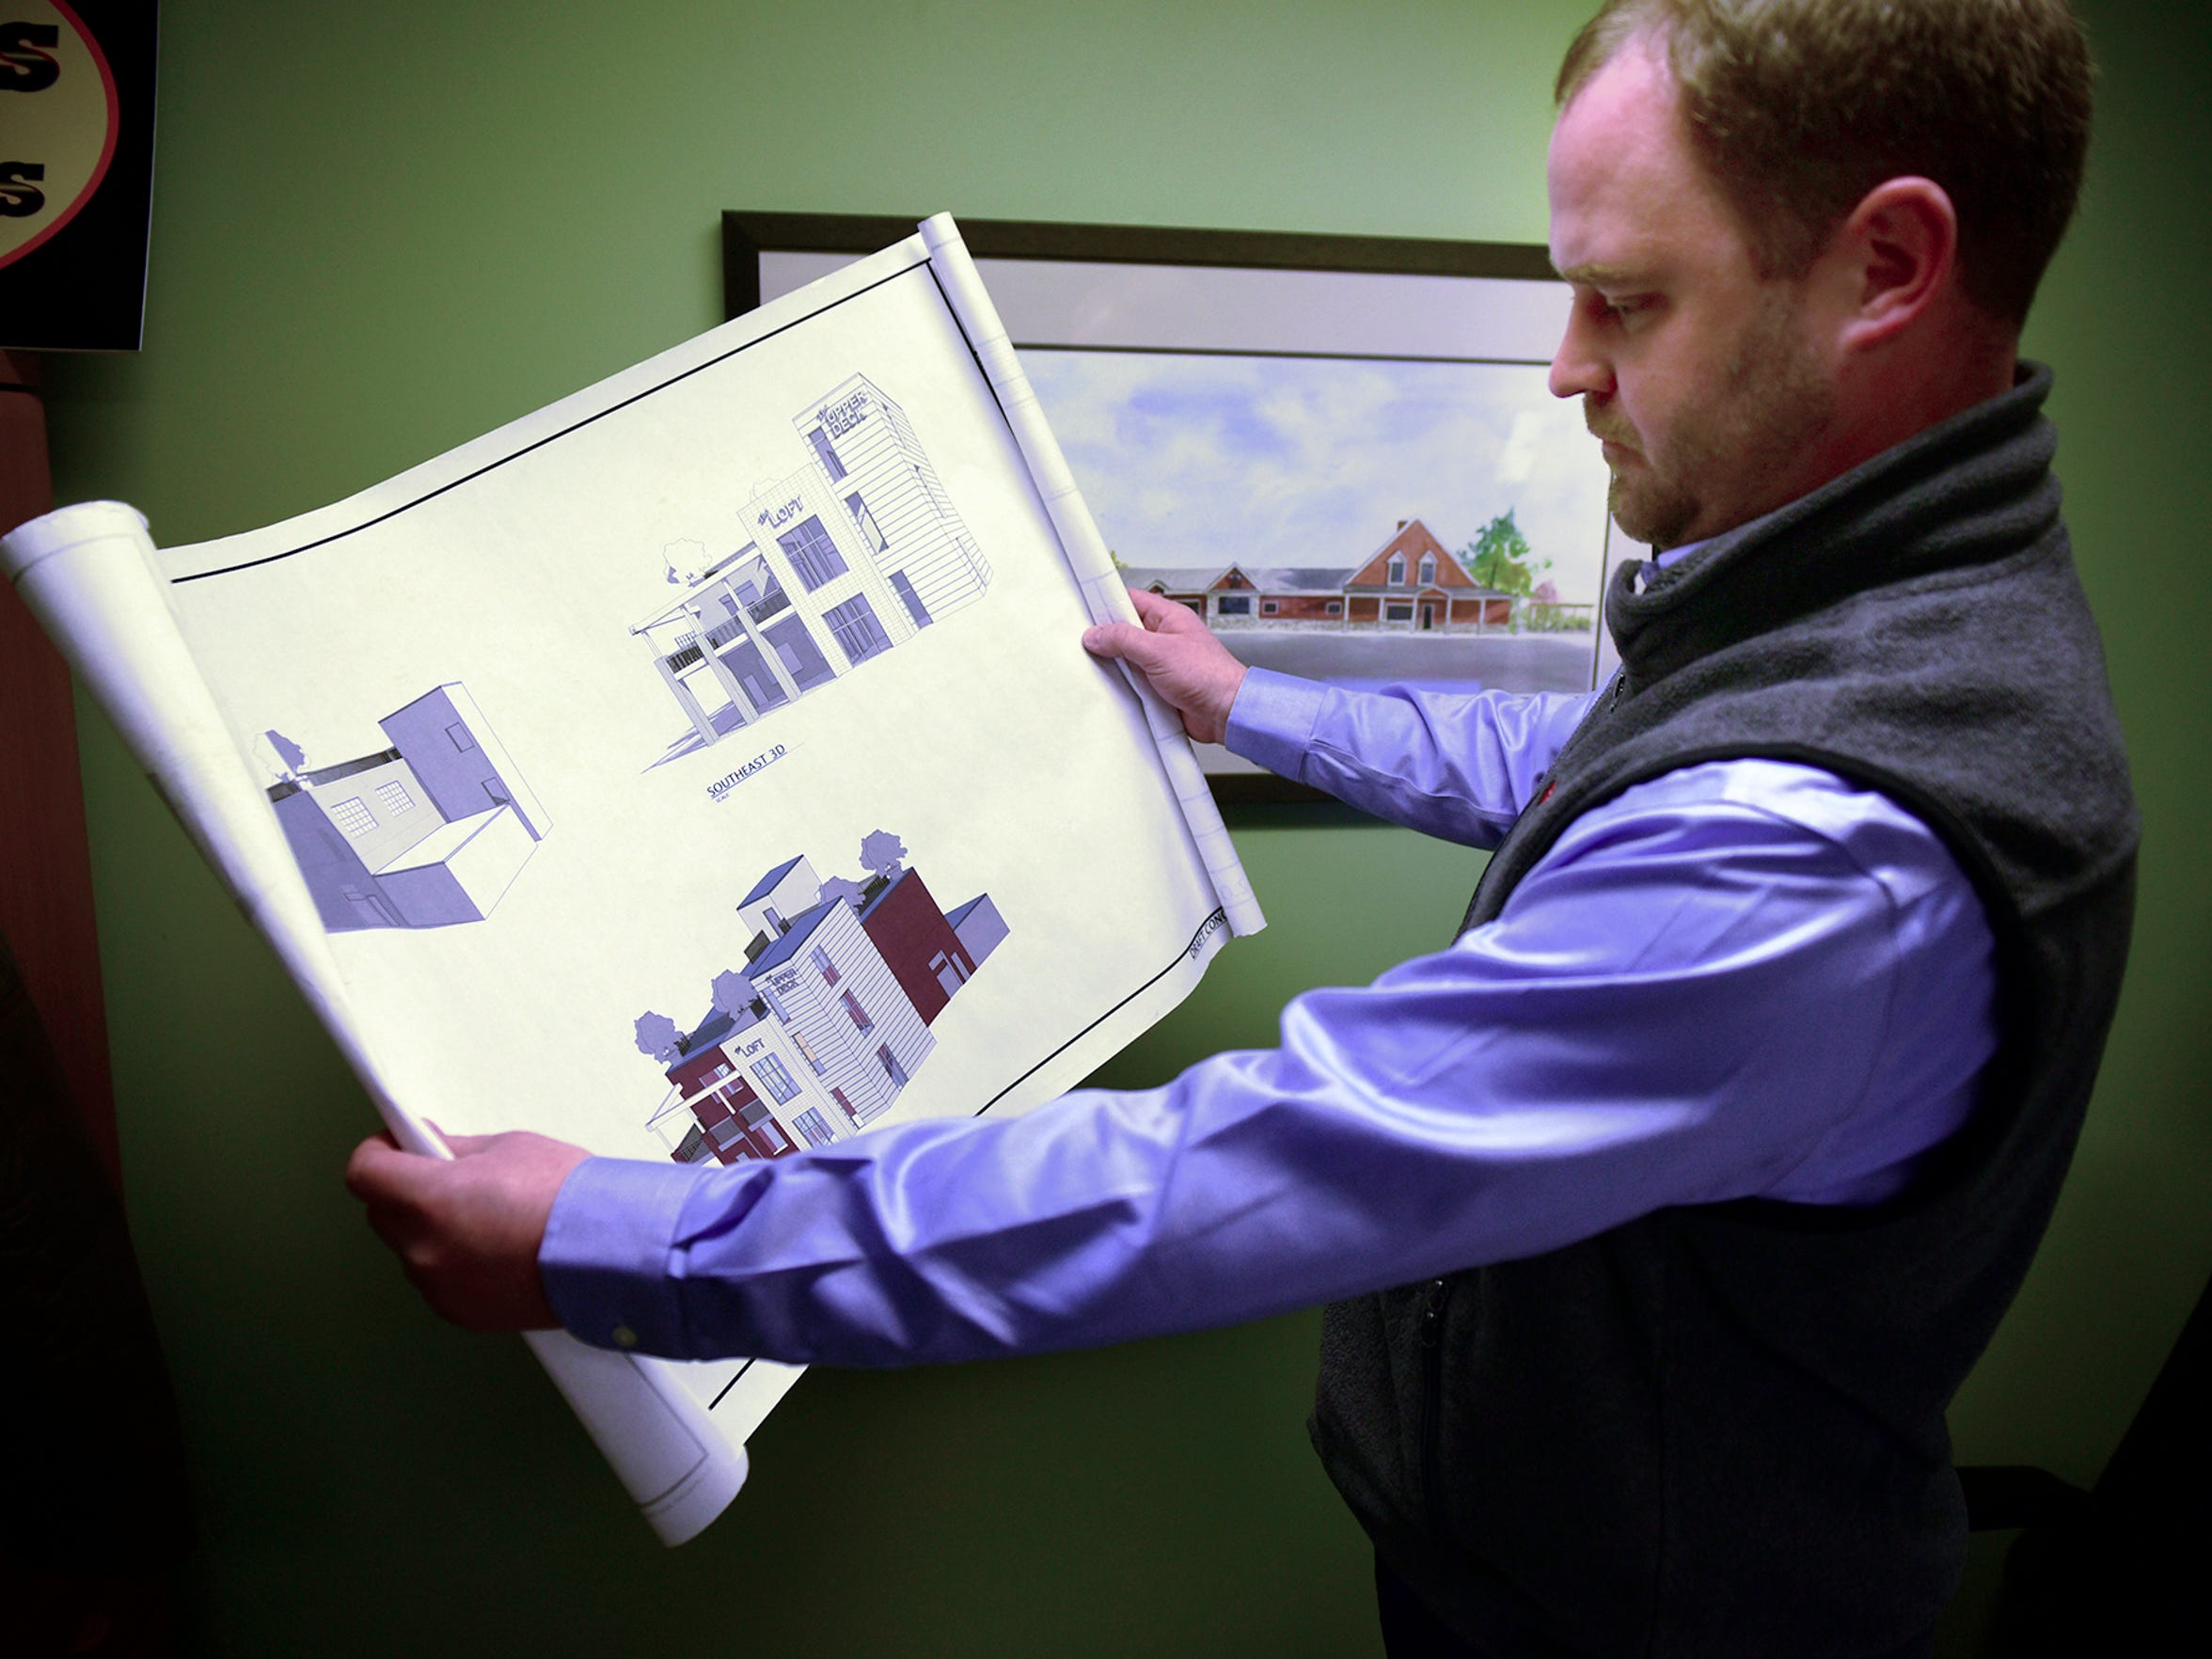 Leo Schoenhofen, president and CEO of The Butcher Shoppe, looks over plans for Grant Street Loft, an event center the Schoenhofen's hope to open by the early fall. Located in the old Jennings dealership building at North Second and Grant streets, it will also have a commercial kitchen that will help ease the growing load at The Butcher Shoppe.